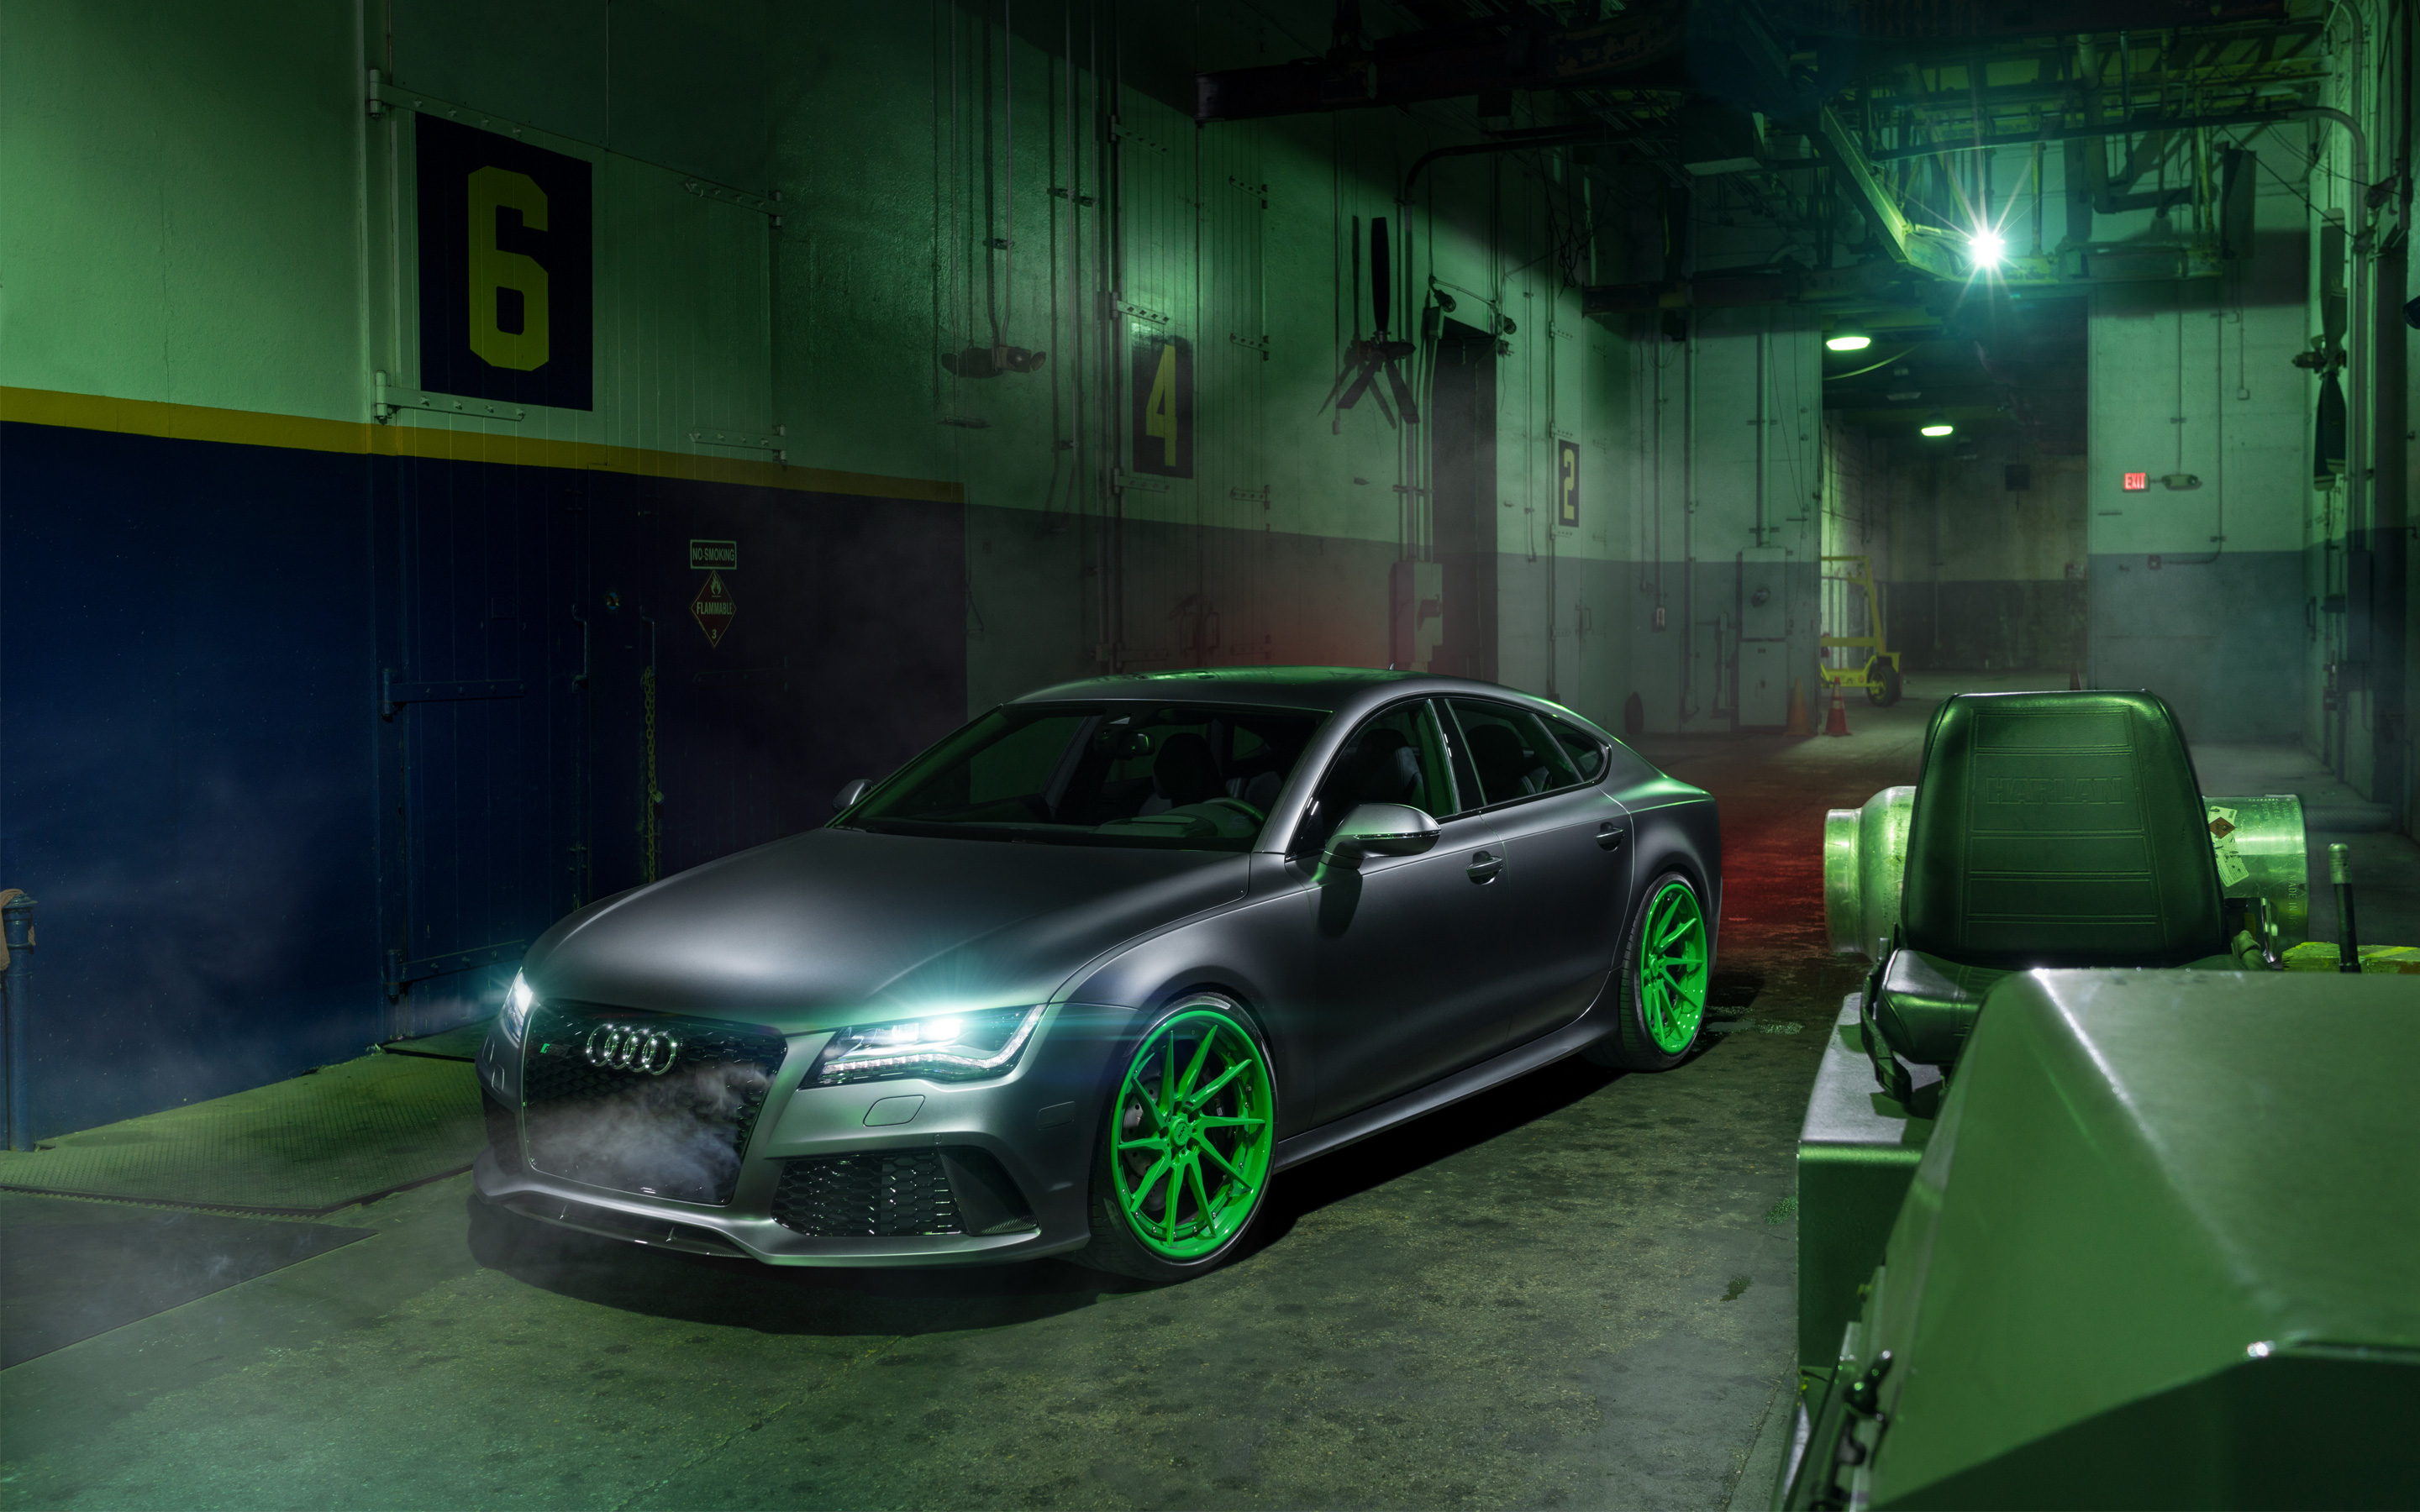 Adv1 Audi Rs7 Wallpaper Hd Car Wallpapers Id 6397